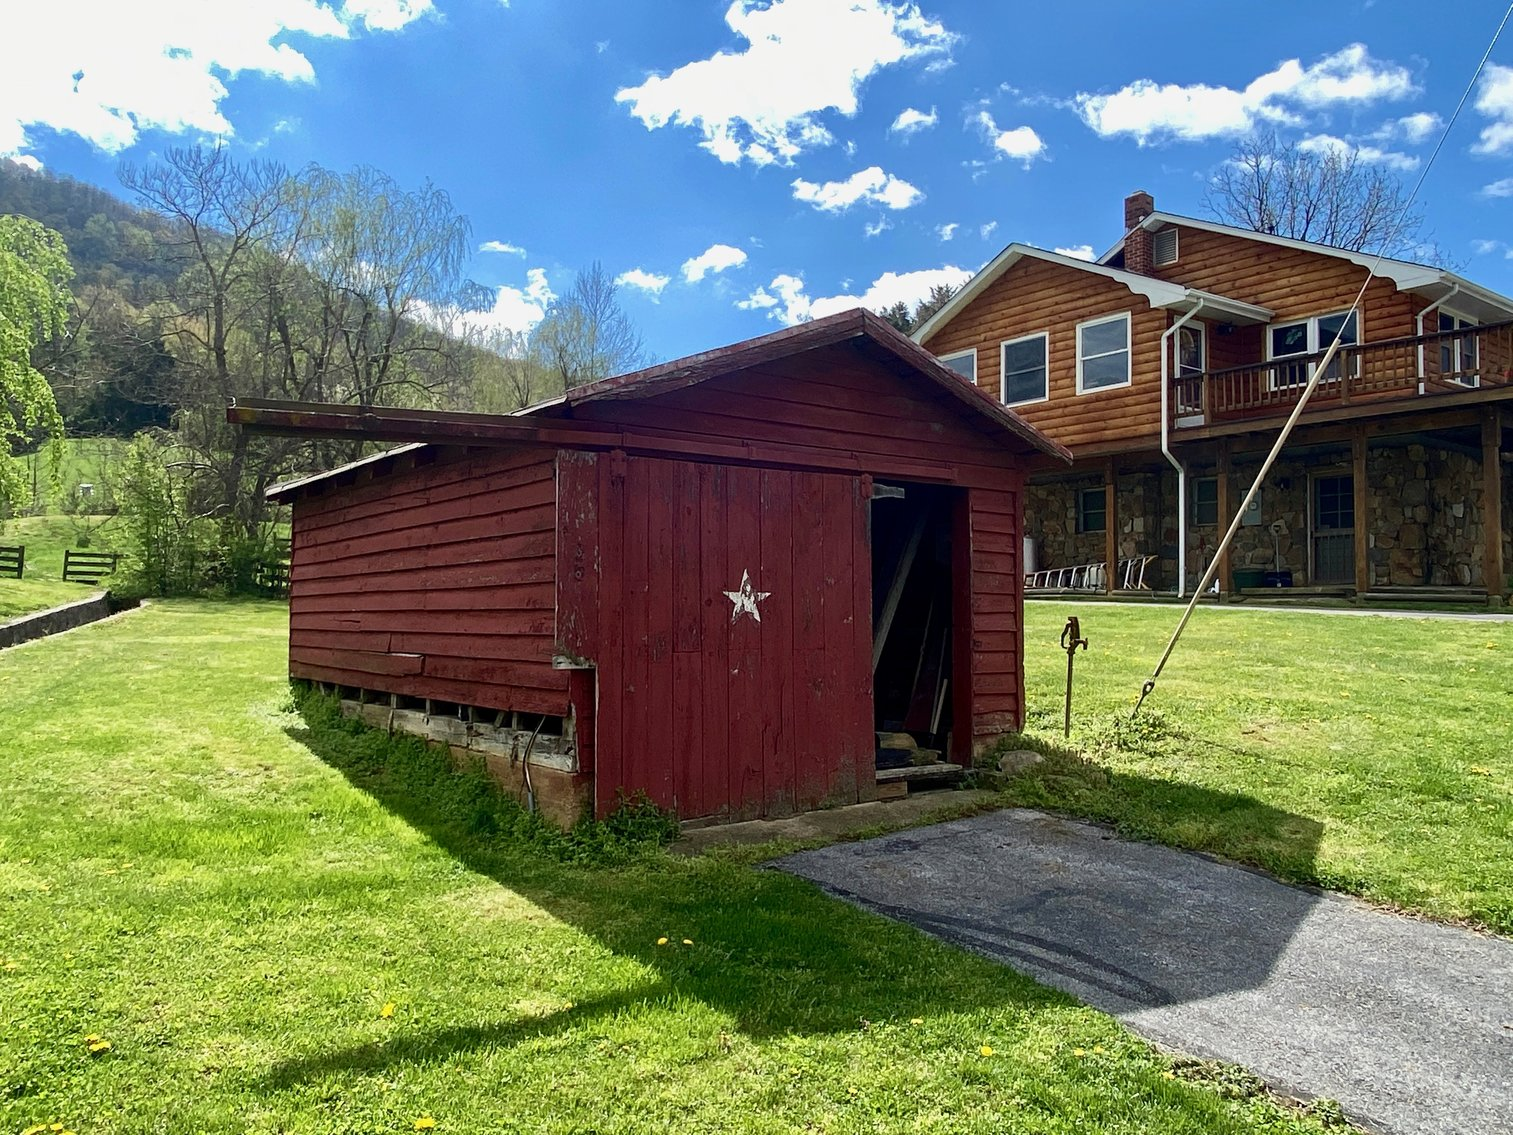 Image for 3 BR/4 BA Home w/Barn, Shop, Ponds, Pool, Fencing & More on 70 +/- Acres w/Amazing Mountain Views--Luray, VA